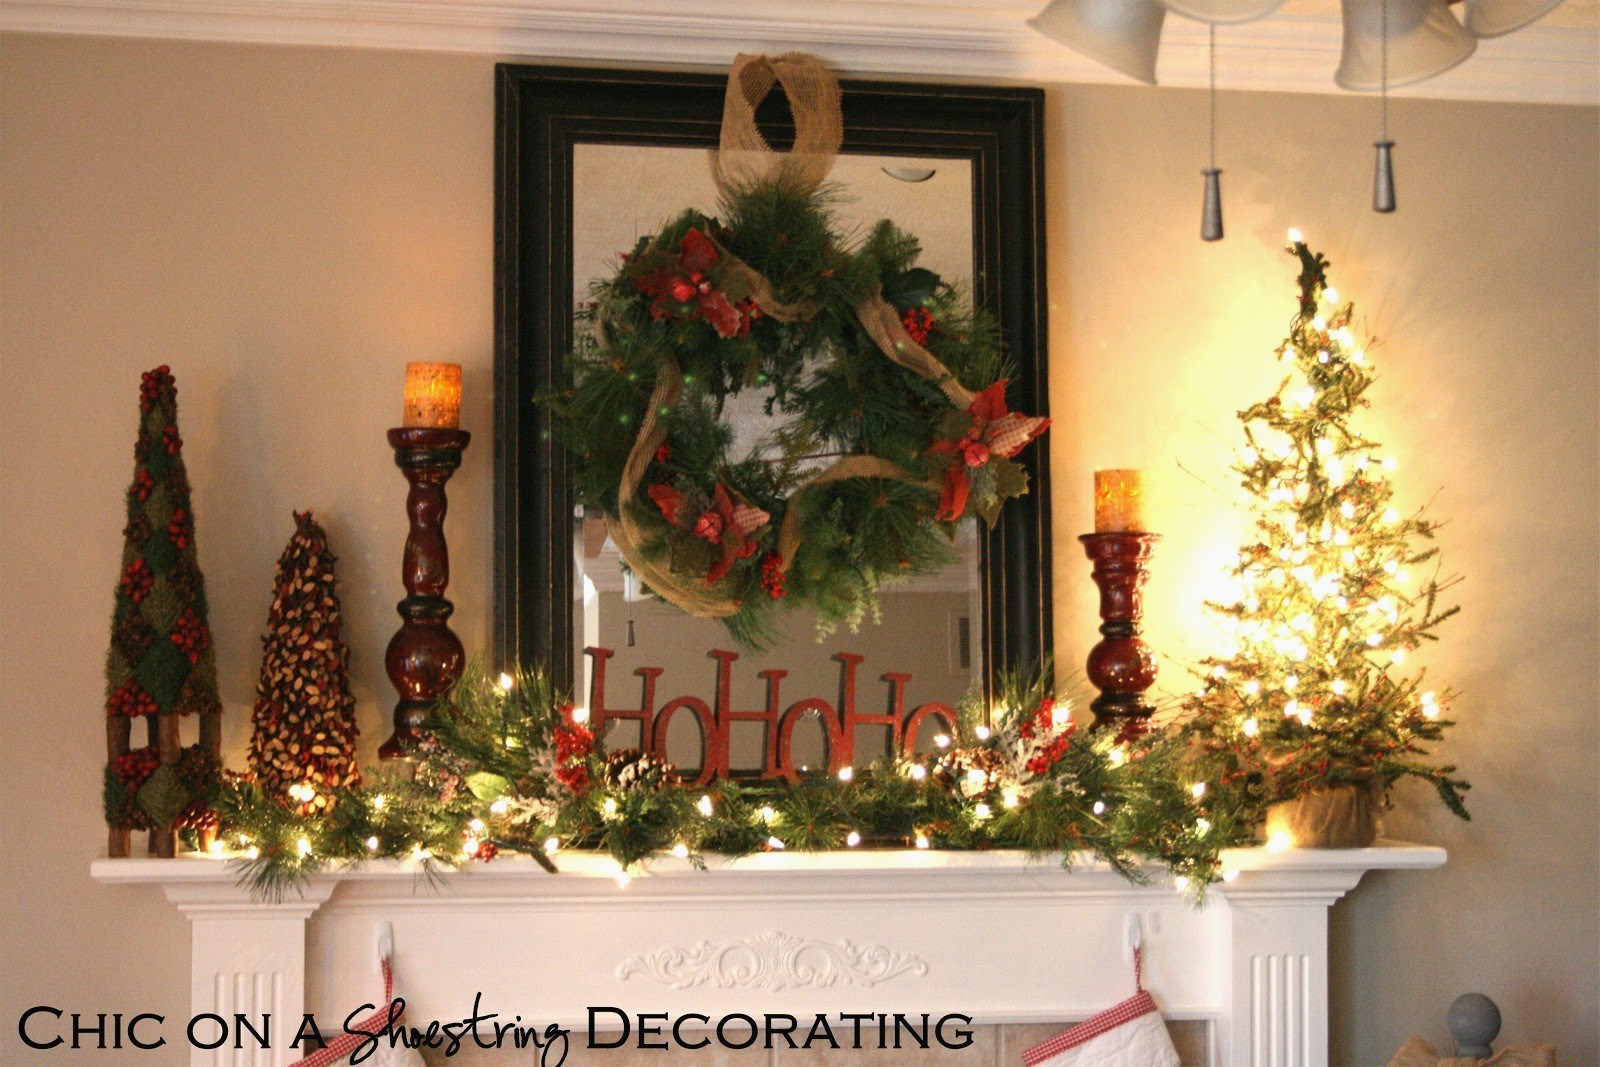 Chic on a Shoestring Decorating Rustic Christmas Mantel for.